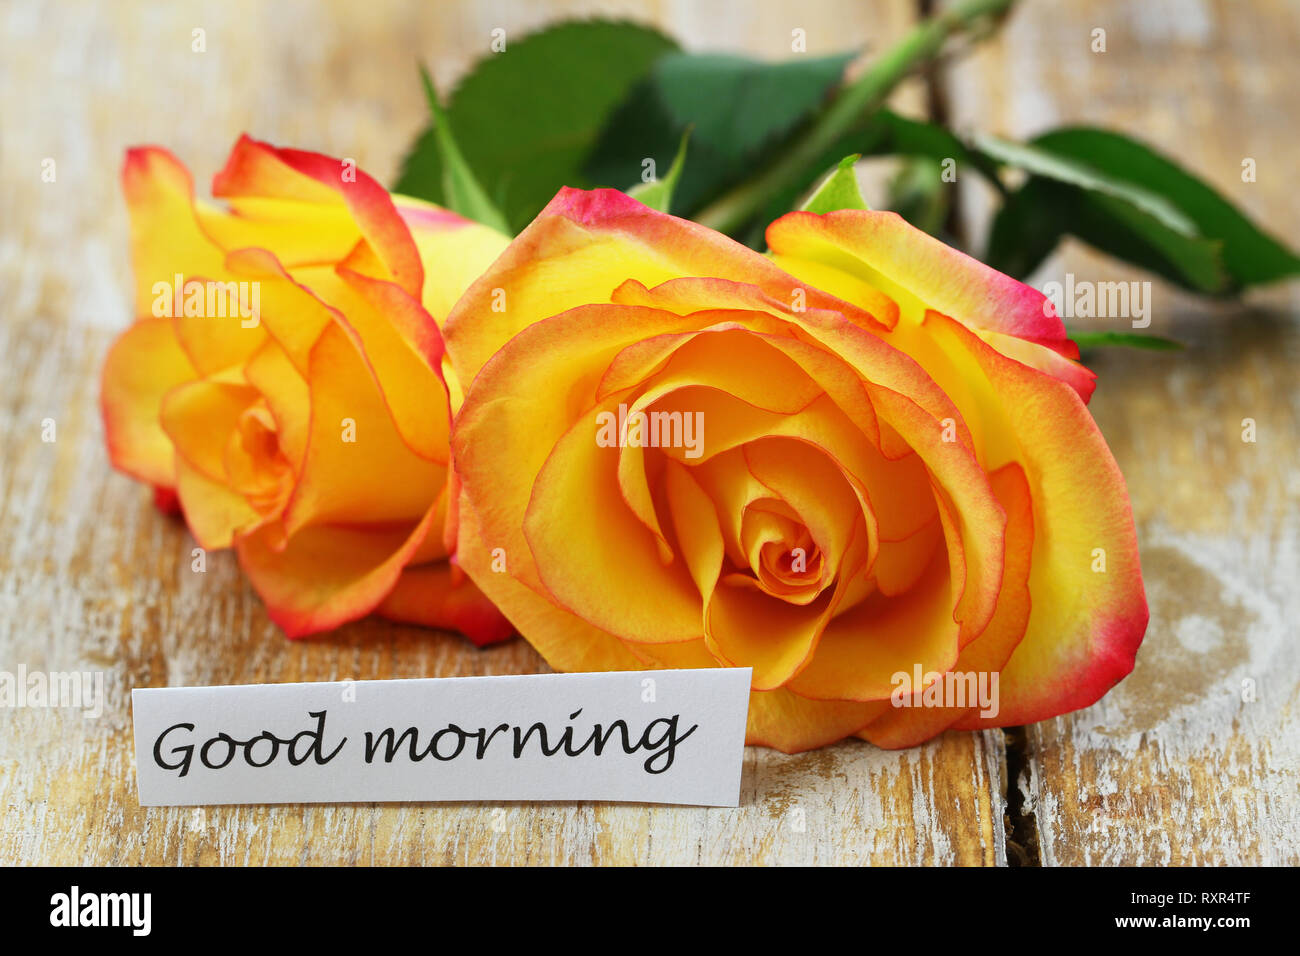 Good Morning Card With Flowers Stock Photos Good Morning Card With